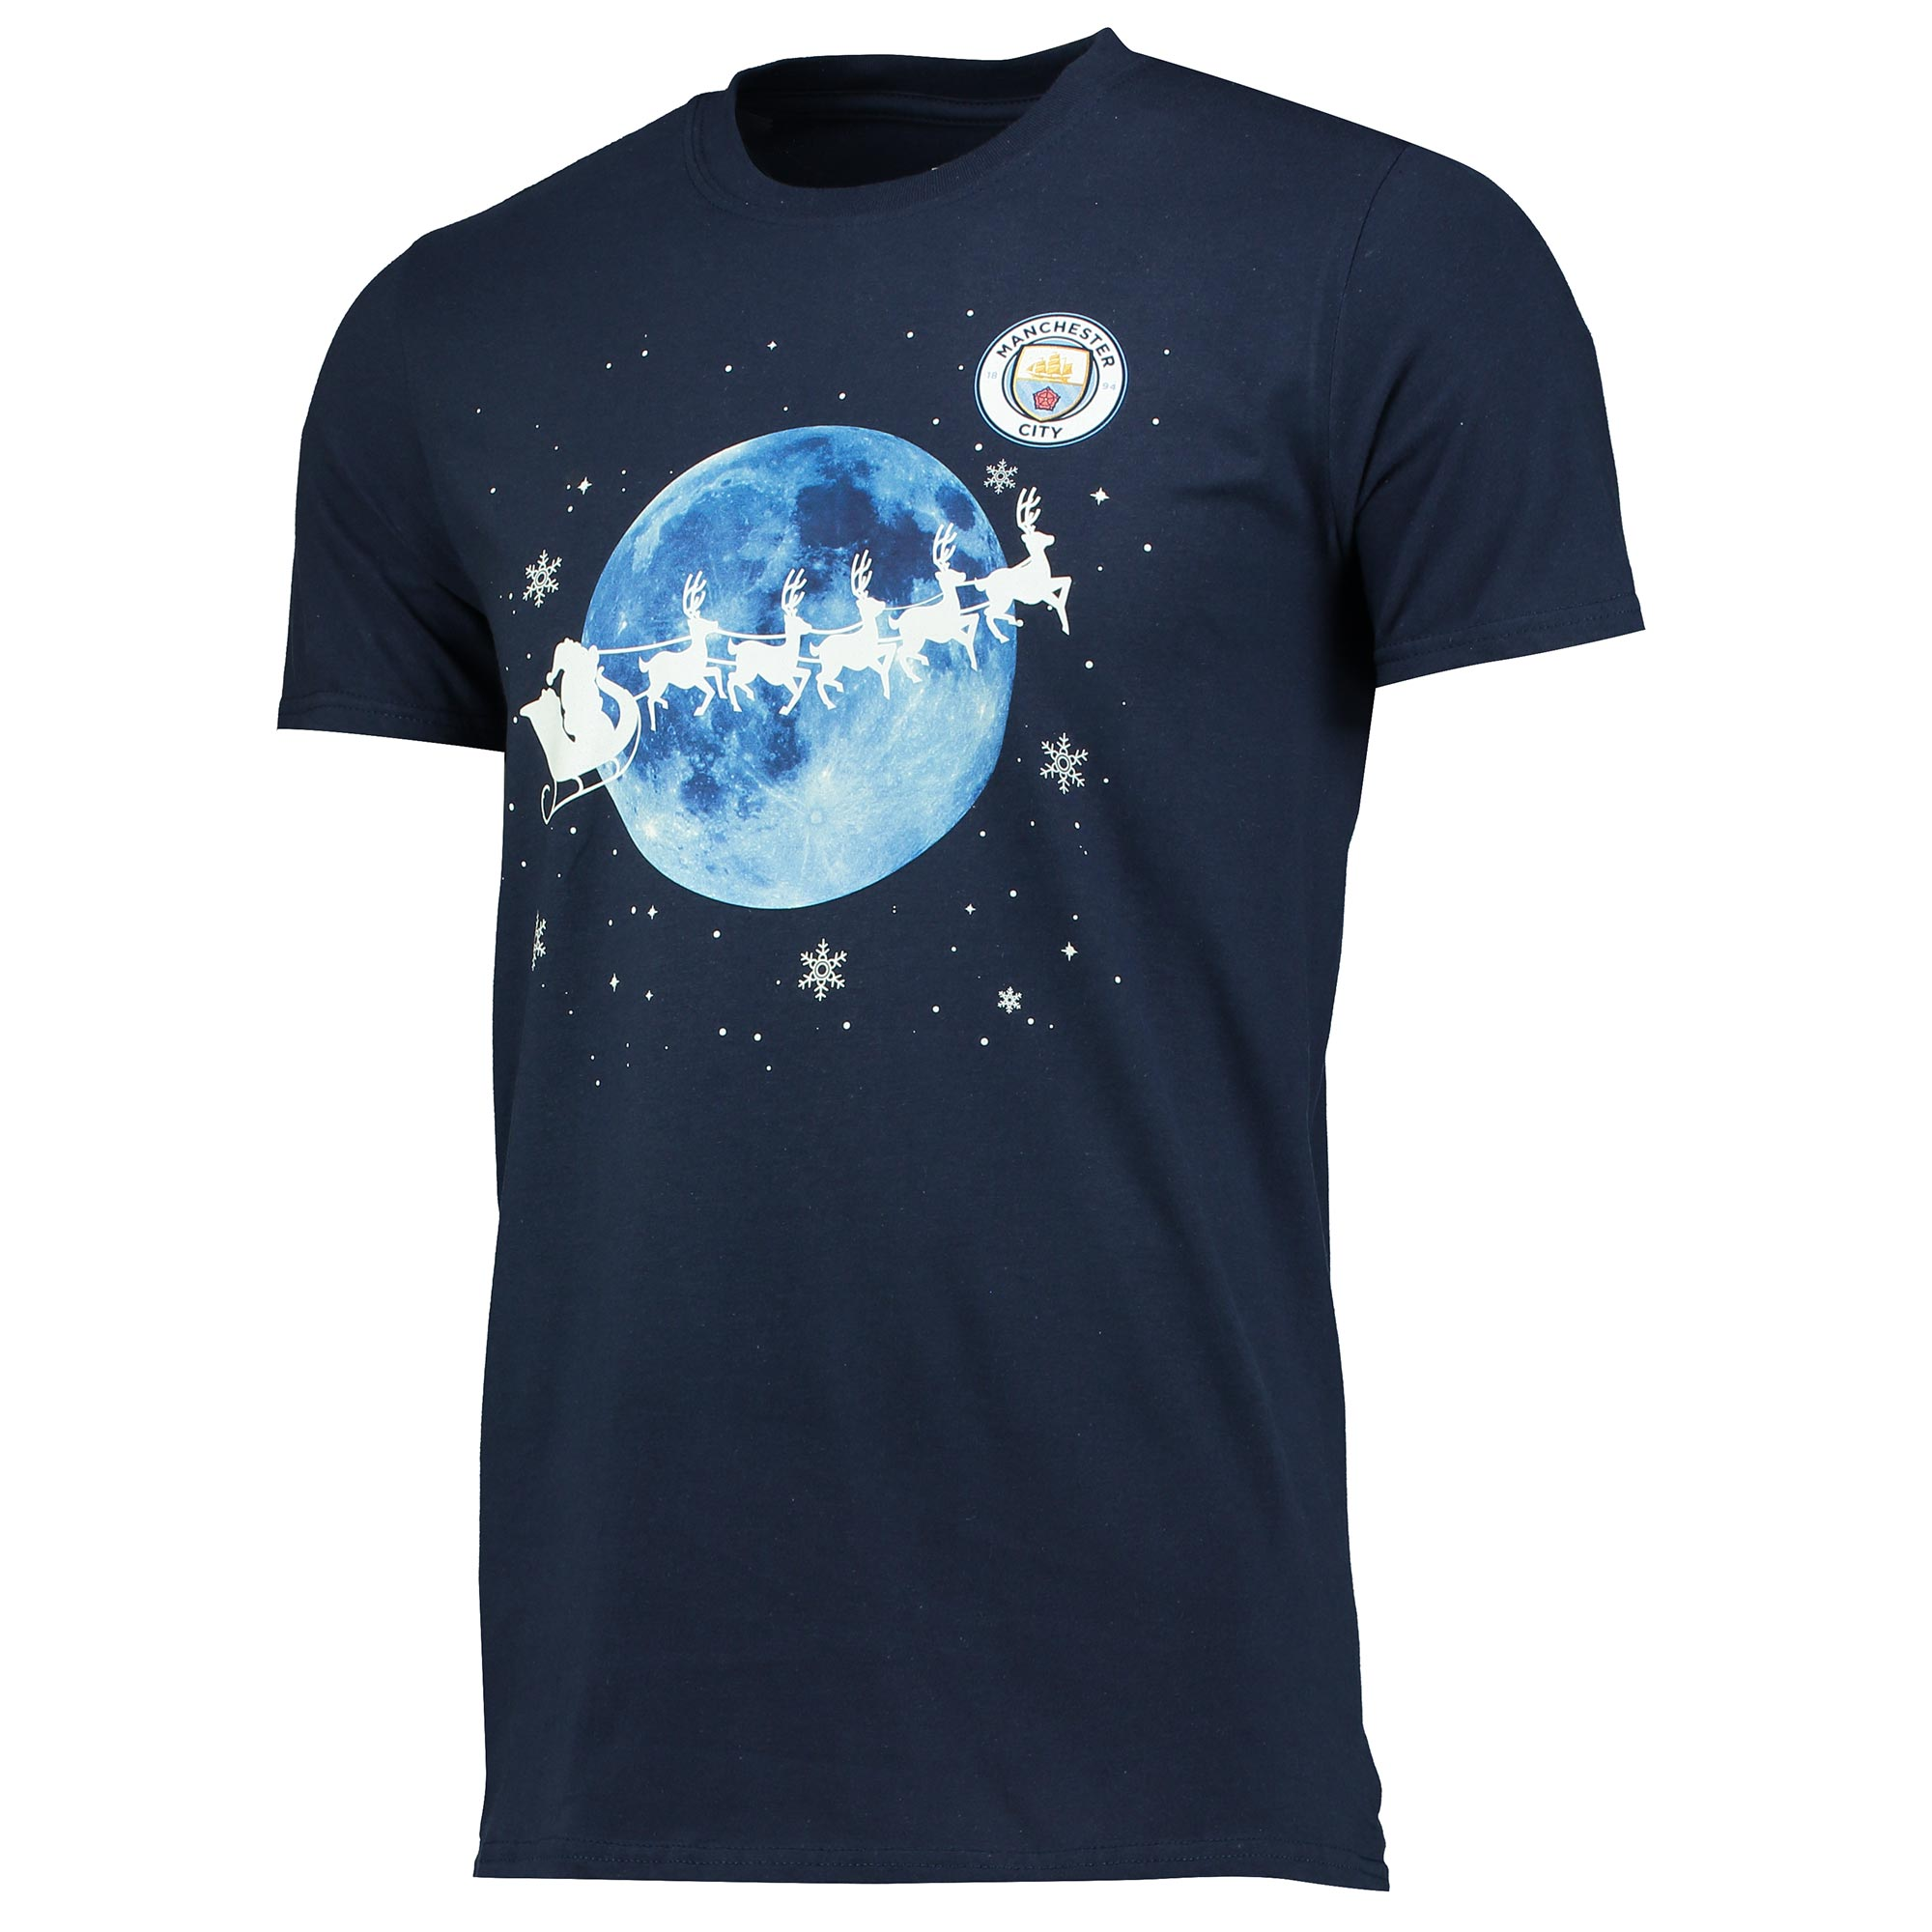 Manchester City Christmas Blue Moon T-Shirt - Navy - Junior